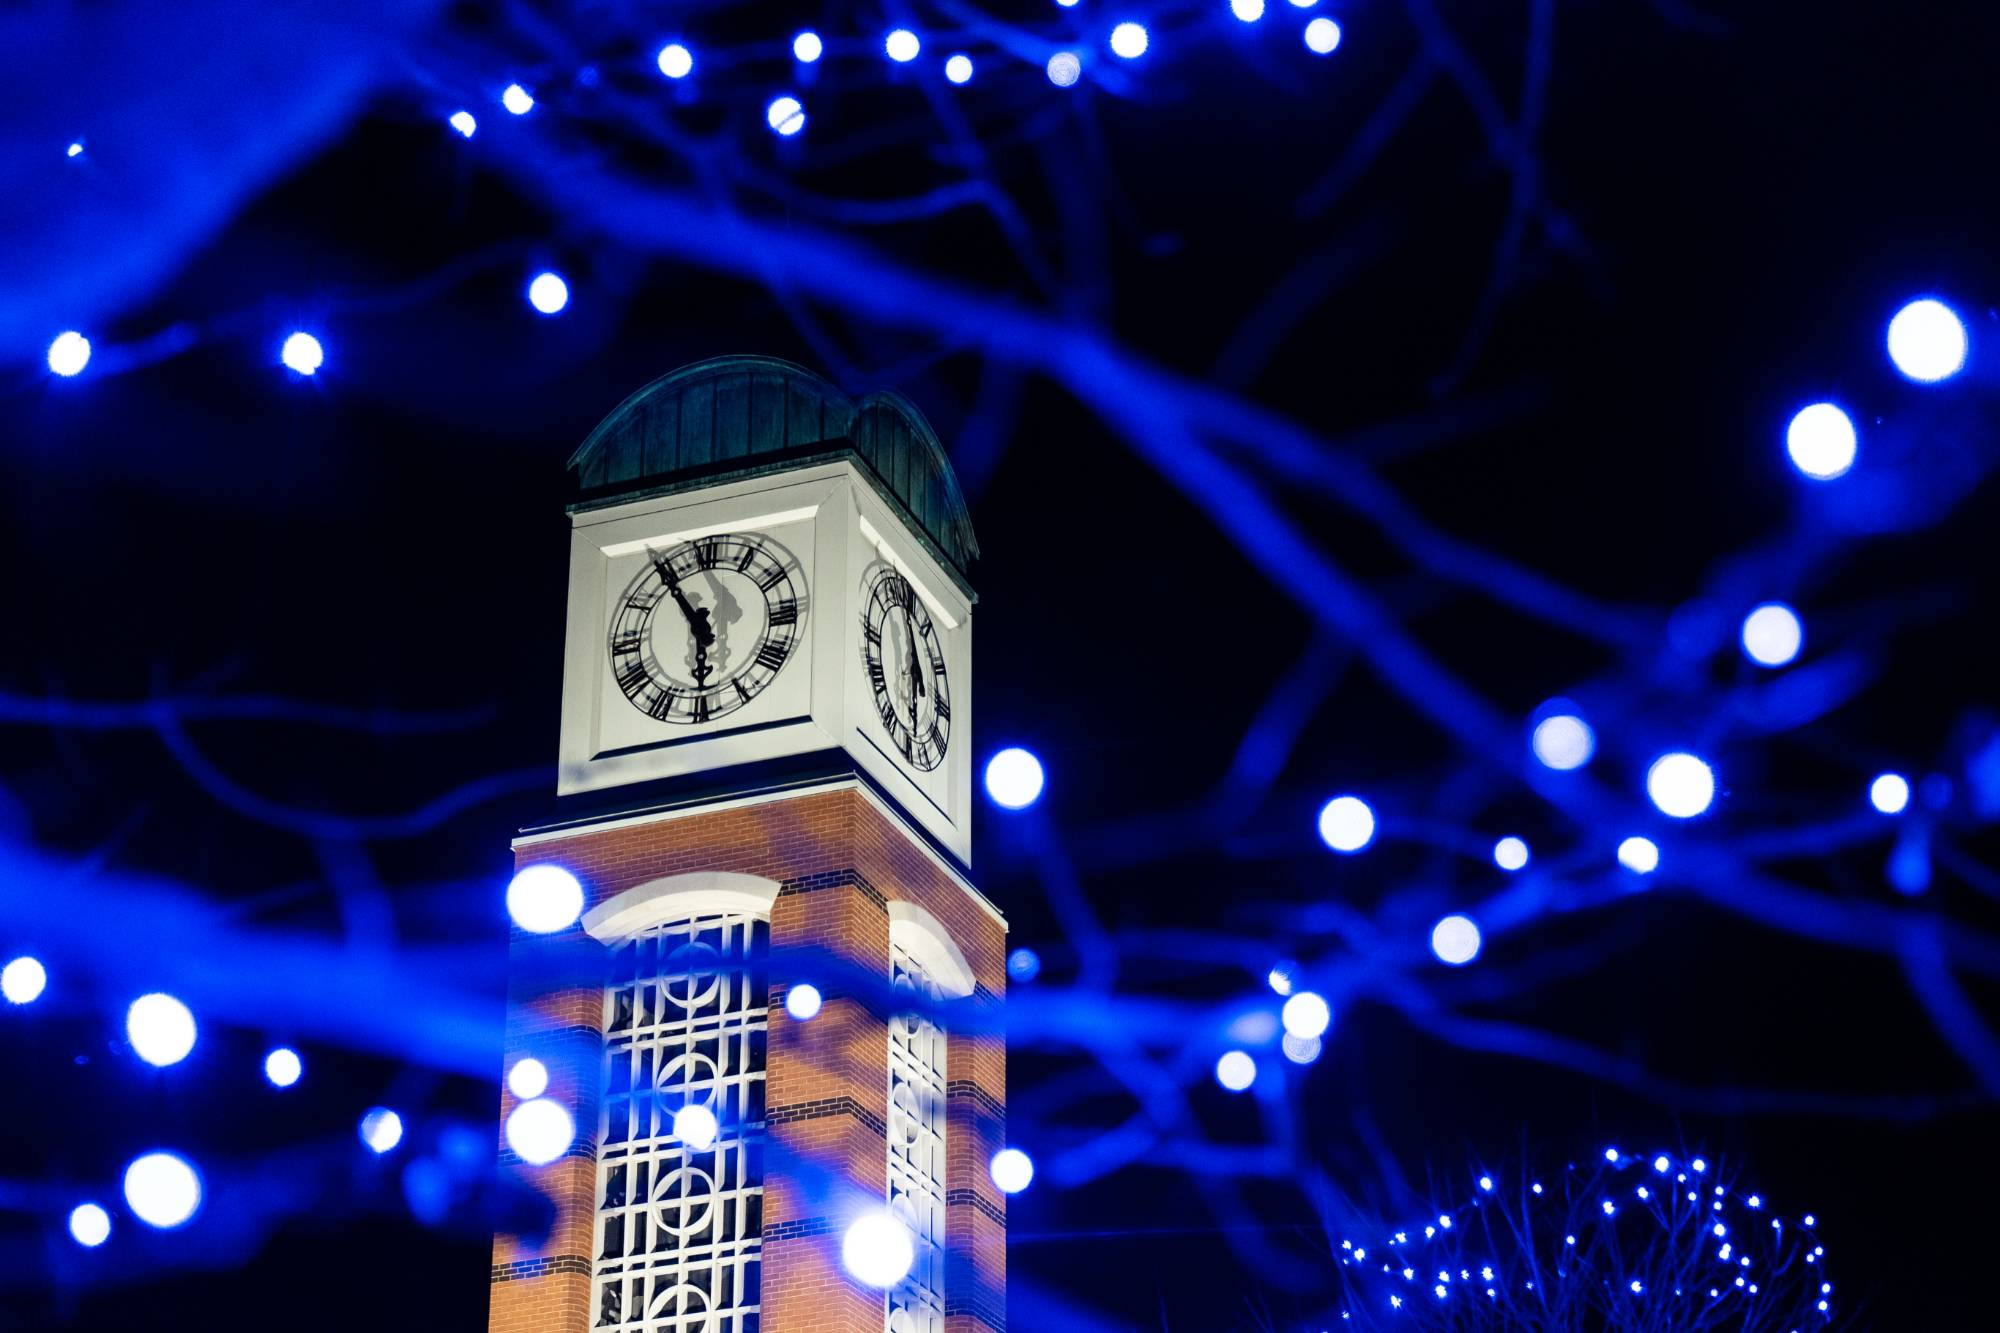 The Cook Carillon Tower surrounded by blue holiday lights